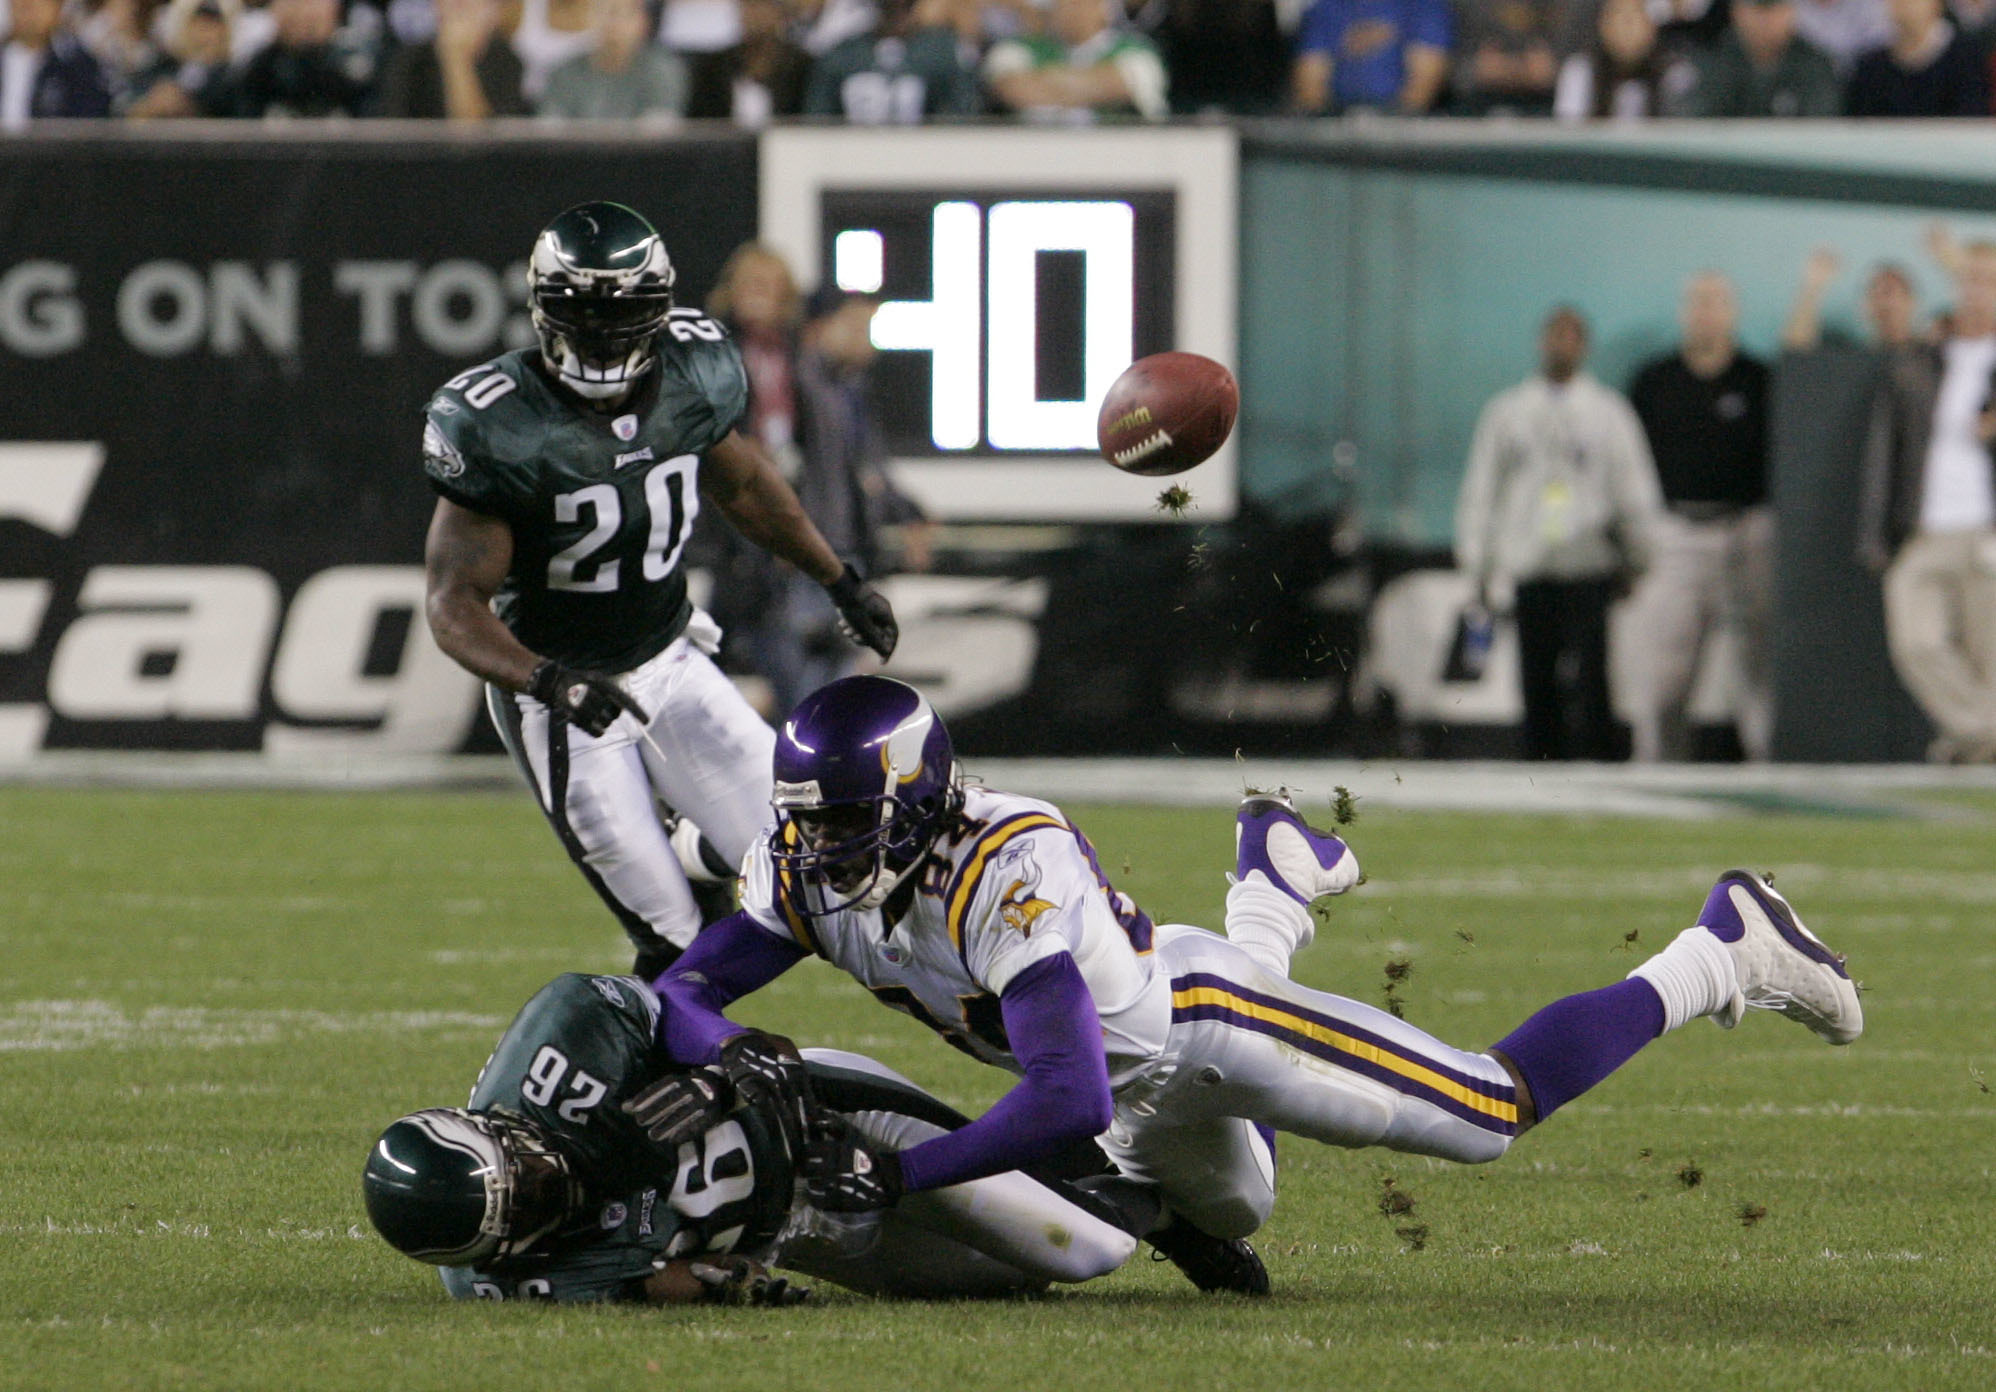 It was a disaster when Randy Moss was traded back to Minnesota in 2010. Here his in a 2004 game against the Eagles.